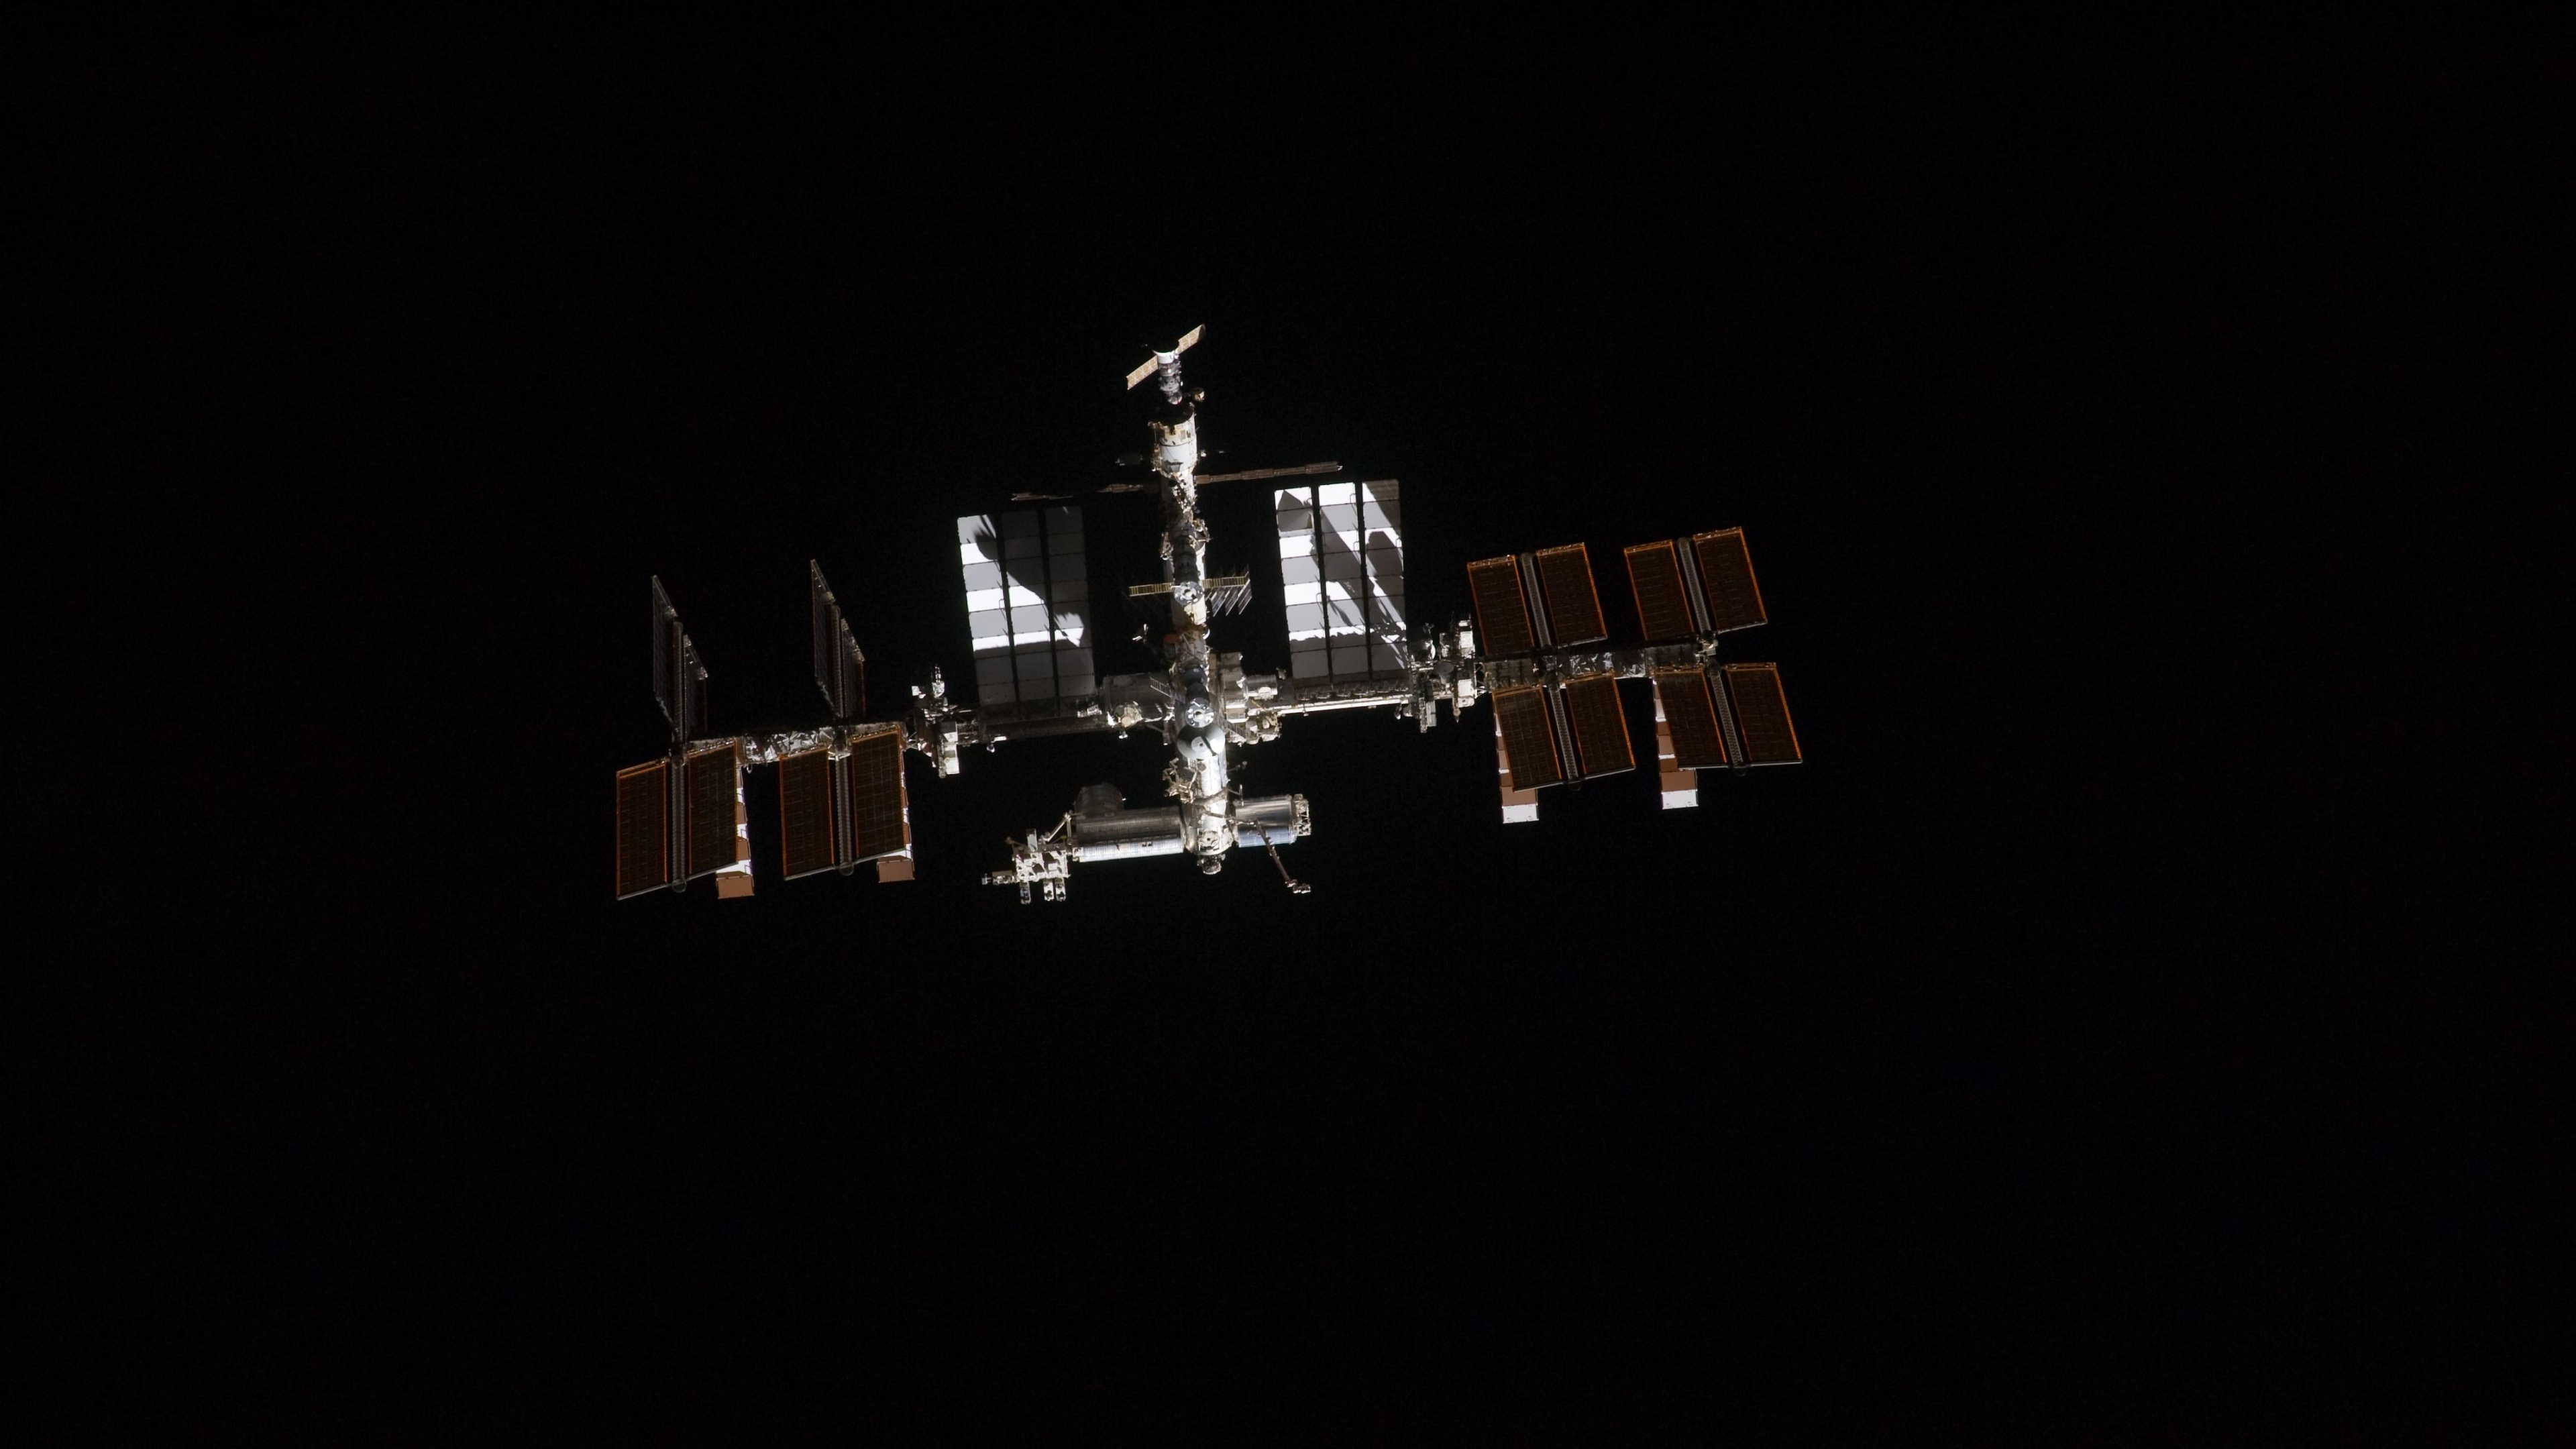 Iss Wallpapers Hd: Iss Wallpapers HD